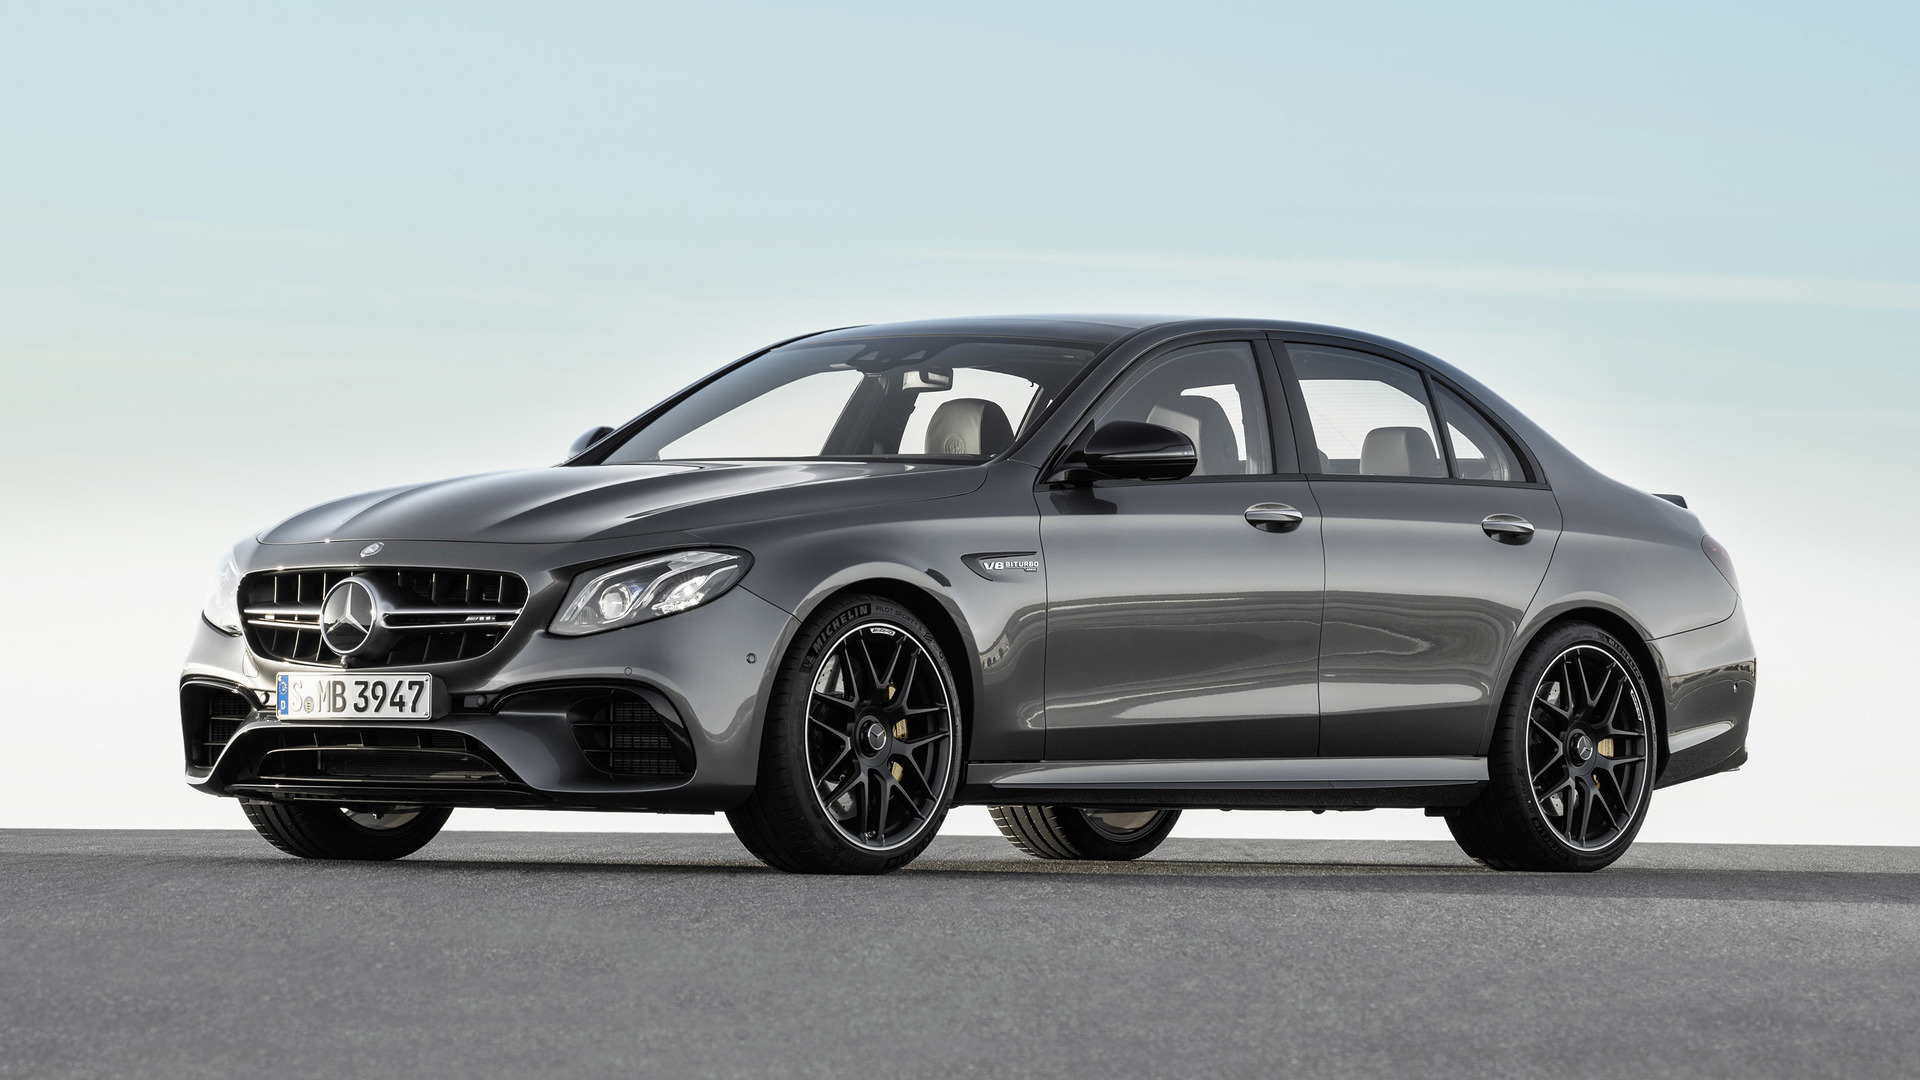 2018 Mercedes Amg E63 4matic Price And Specs